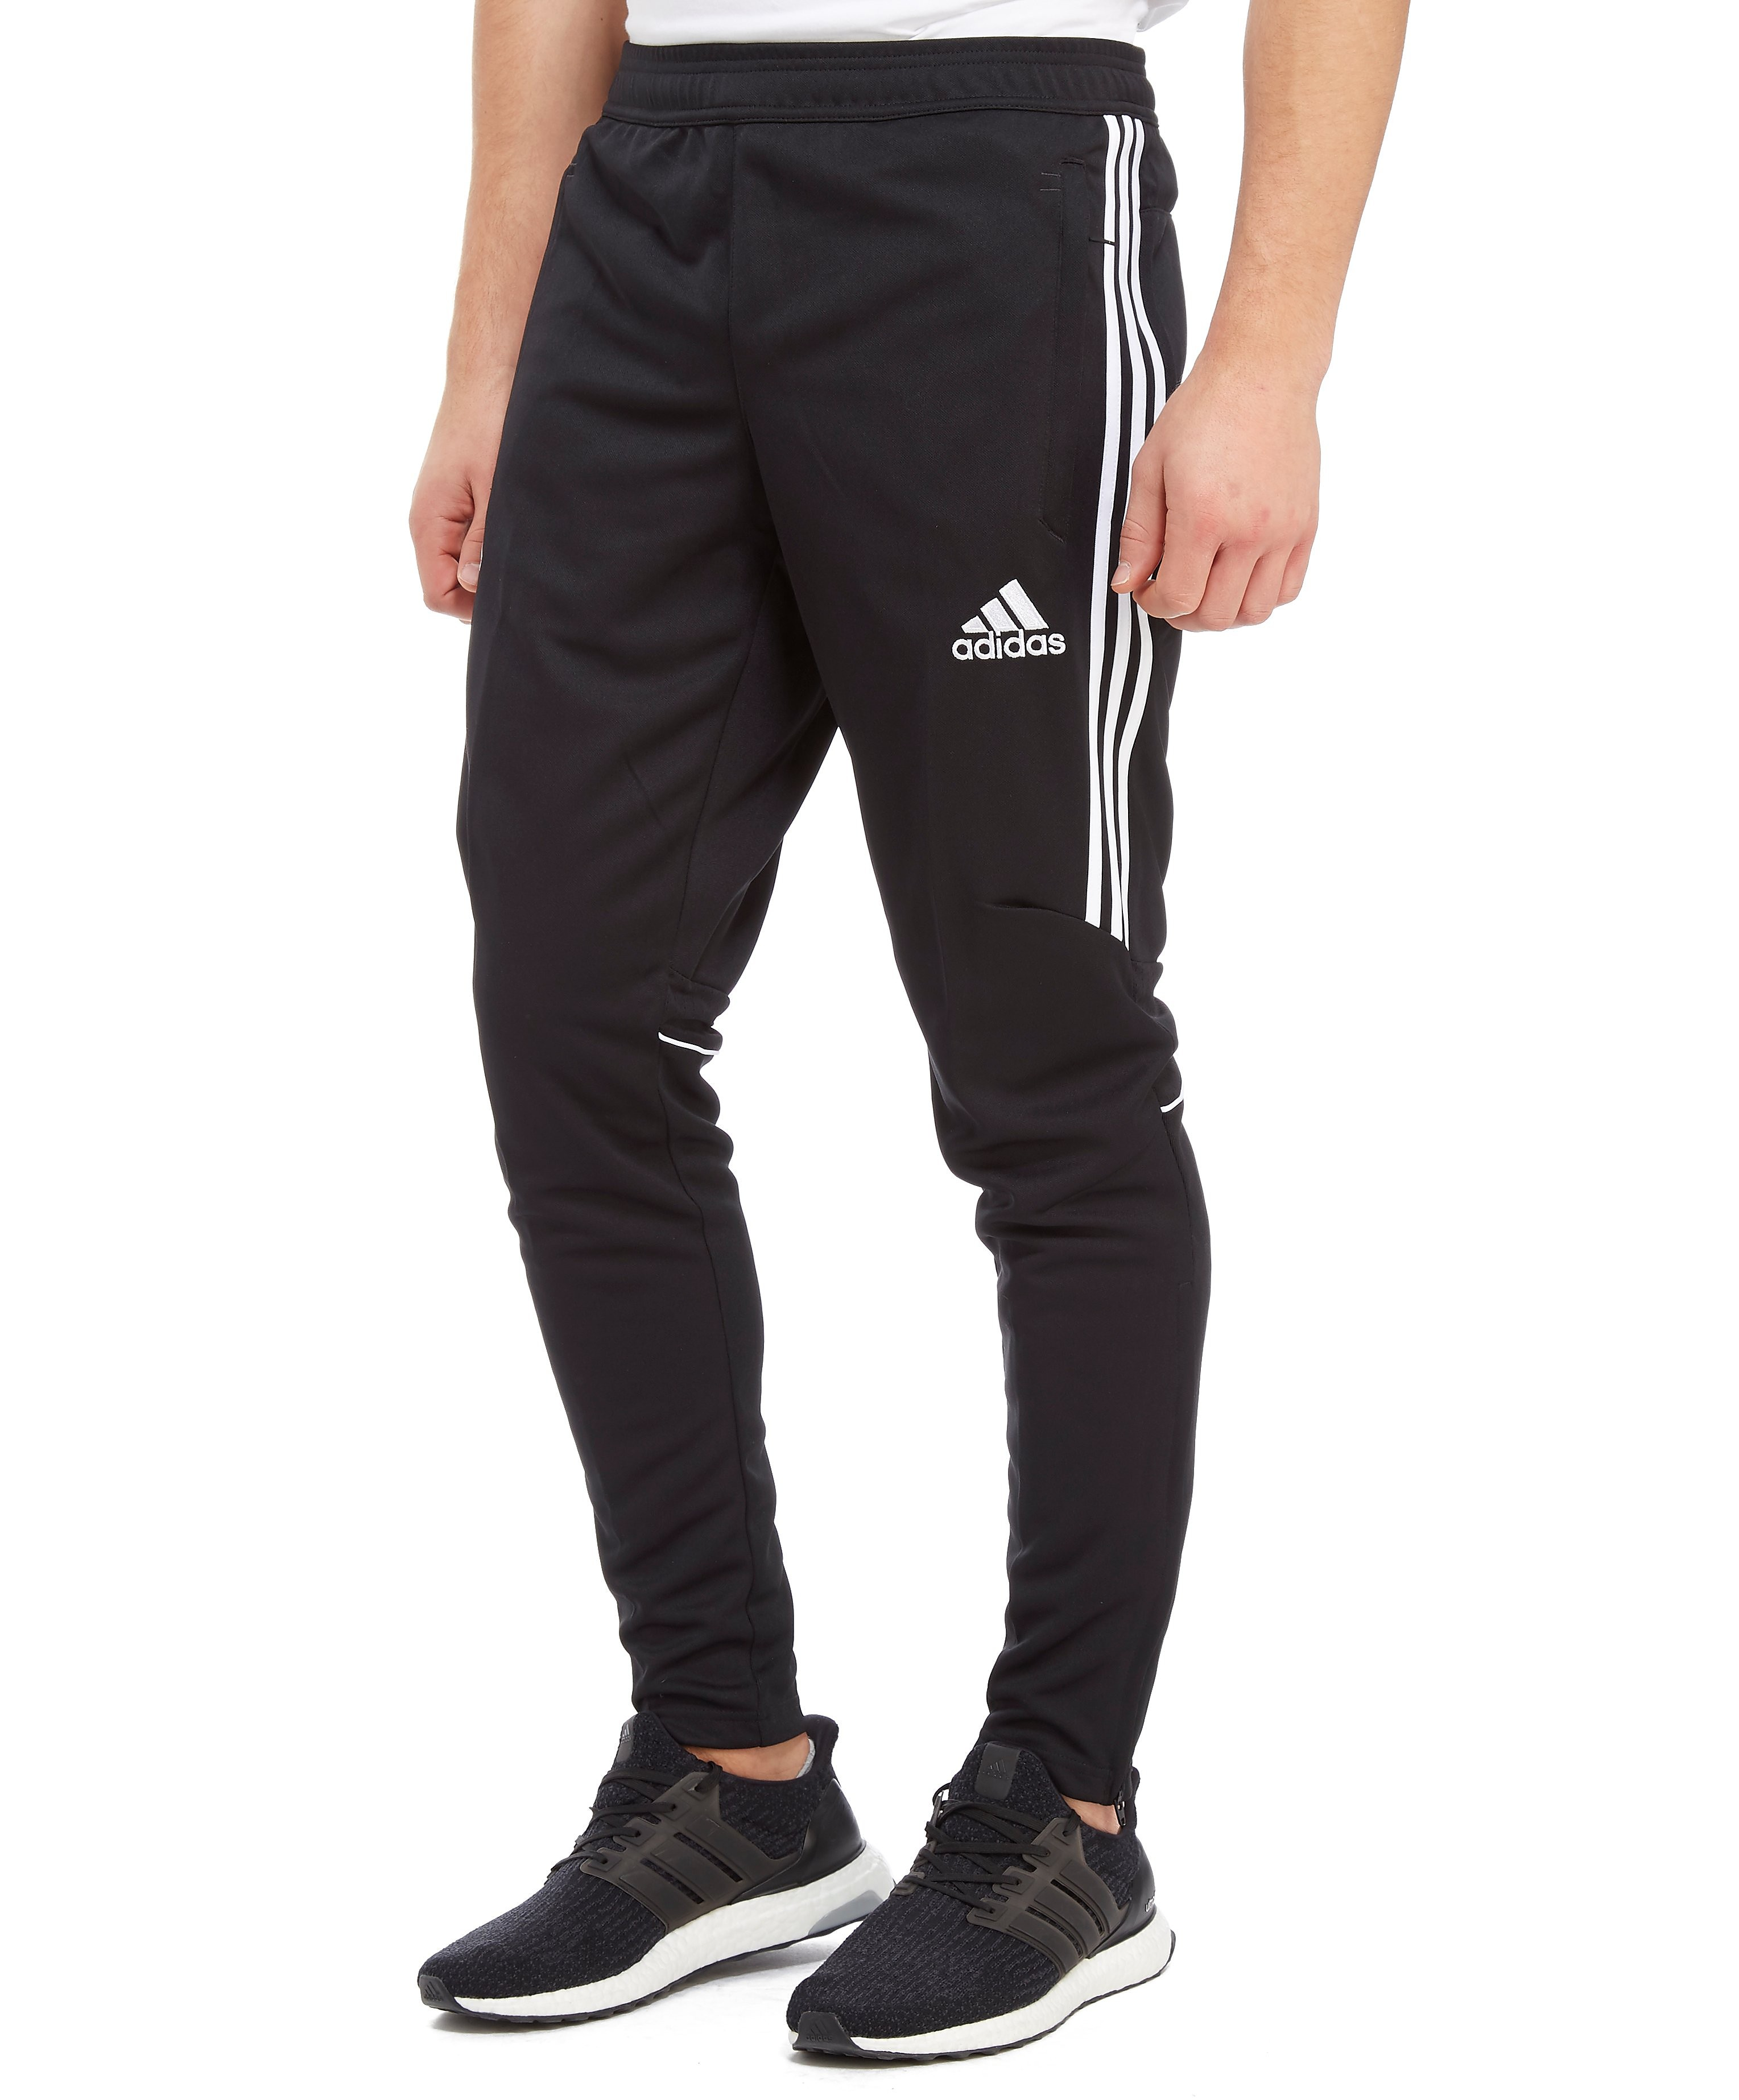 Shop online at JD Sports today for free delivery & next day shipping! Be ready for anything with our range of men's tracksuit bottoms, jogging bottoms & track pants from the biggest brands around like Nike, adidas and Brookhaven.